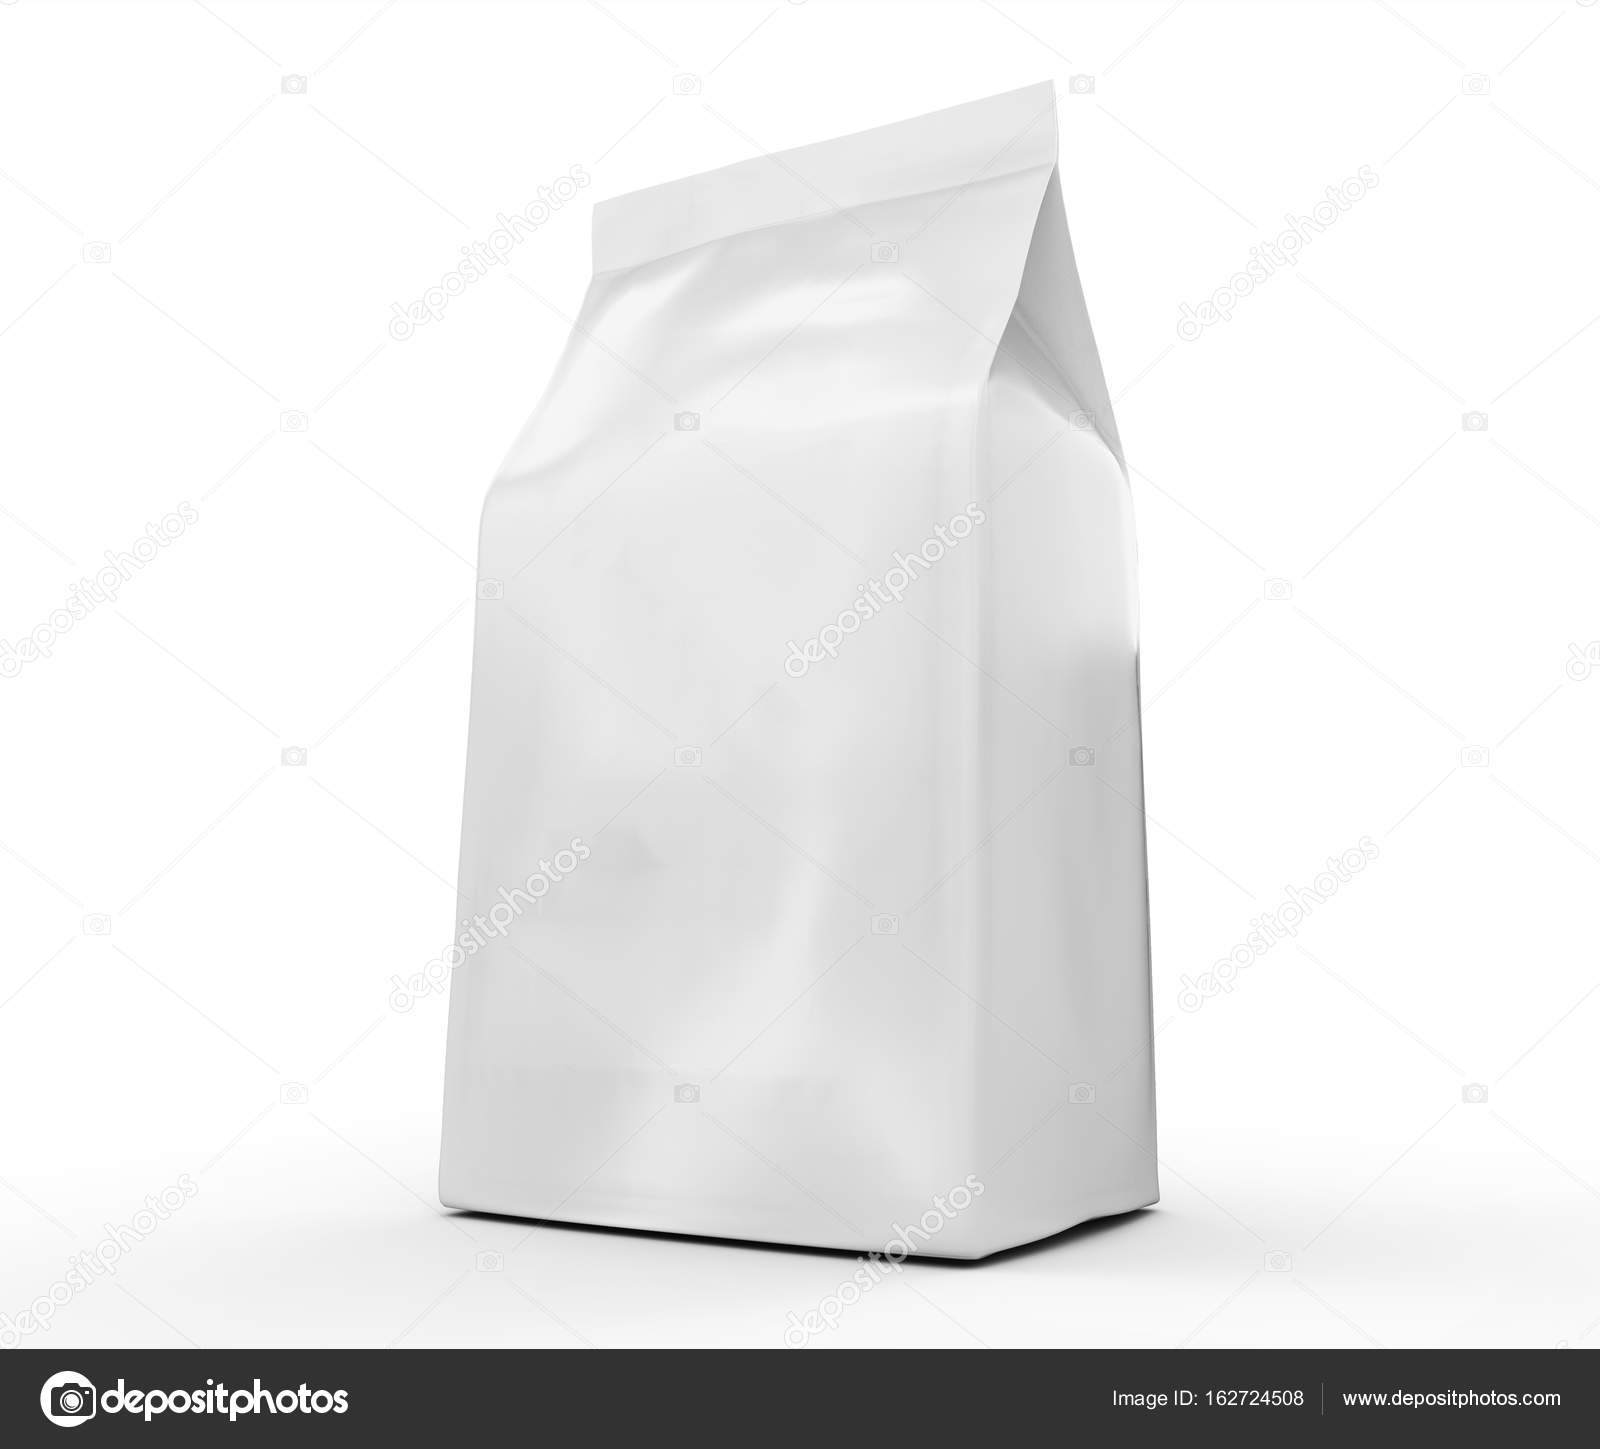 Free coffee bean bag mockup we all graphic designers need some caffeinated beverage to supercharge our creativity and coffee is always the winner in this case. Pearl White Coffee Bean Bag Mockup Stock Photo By C Kchungtw 162724508